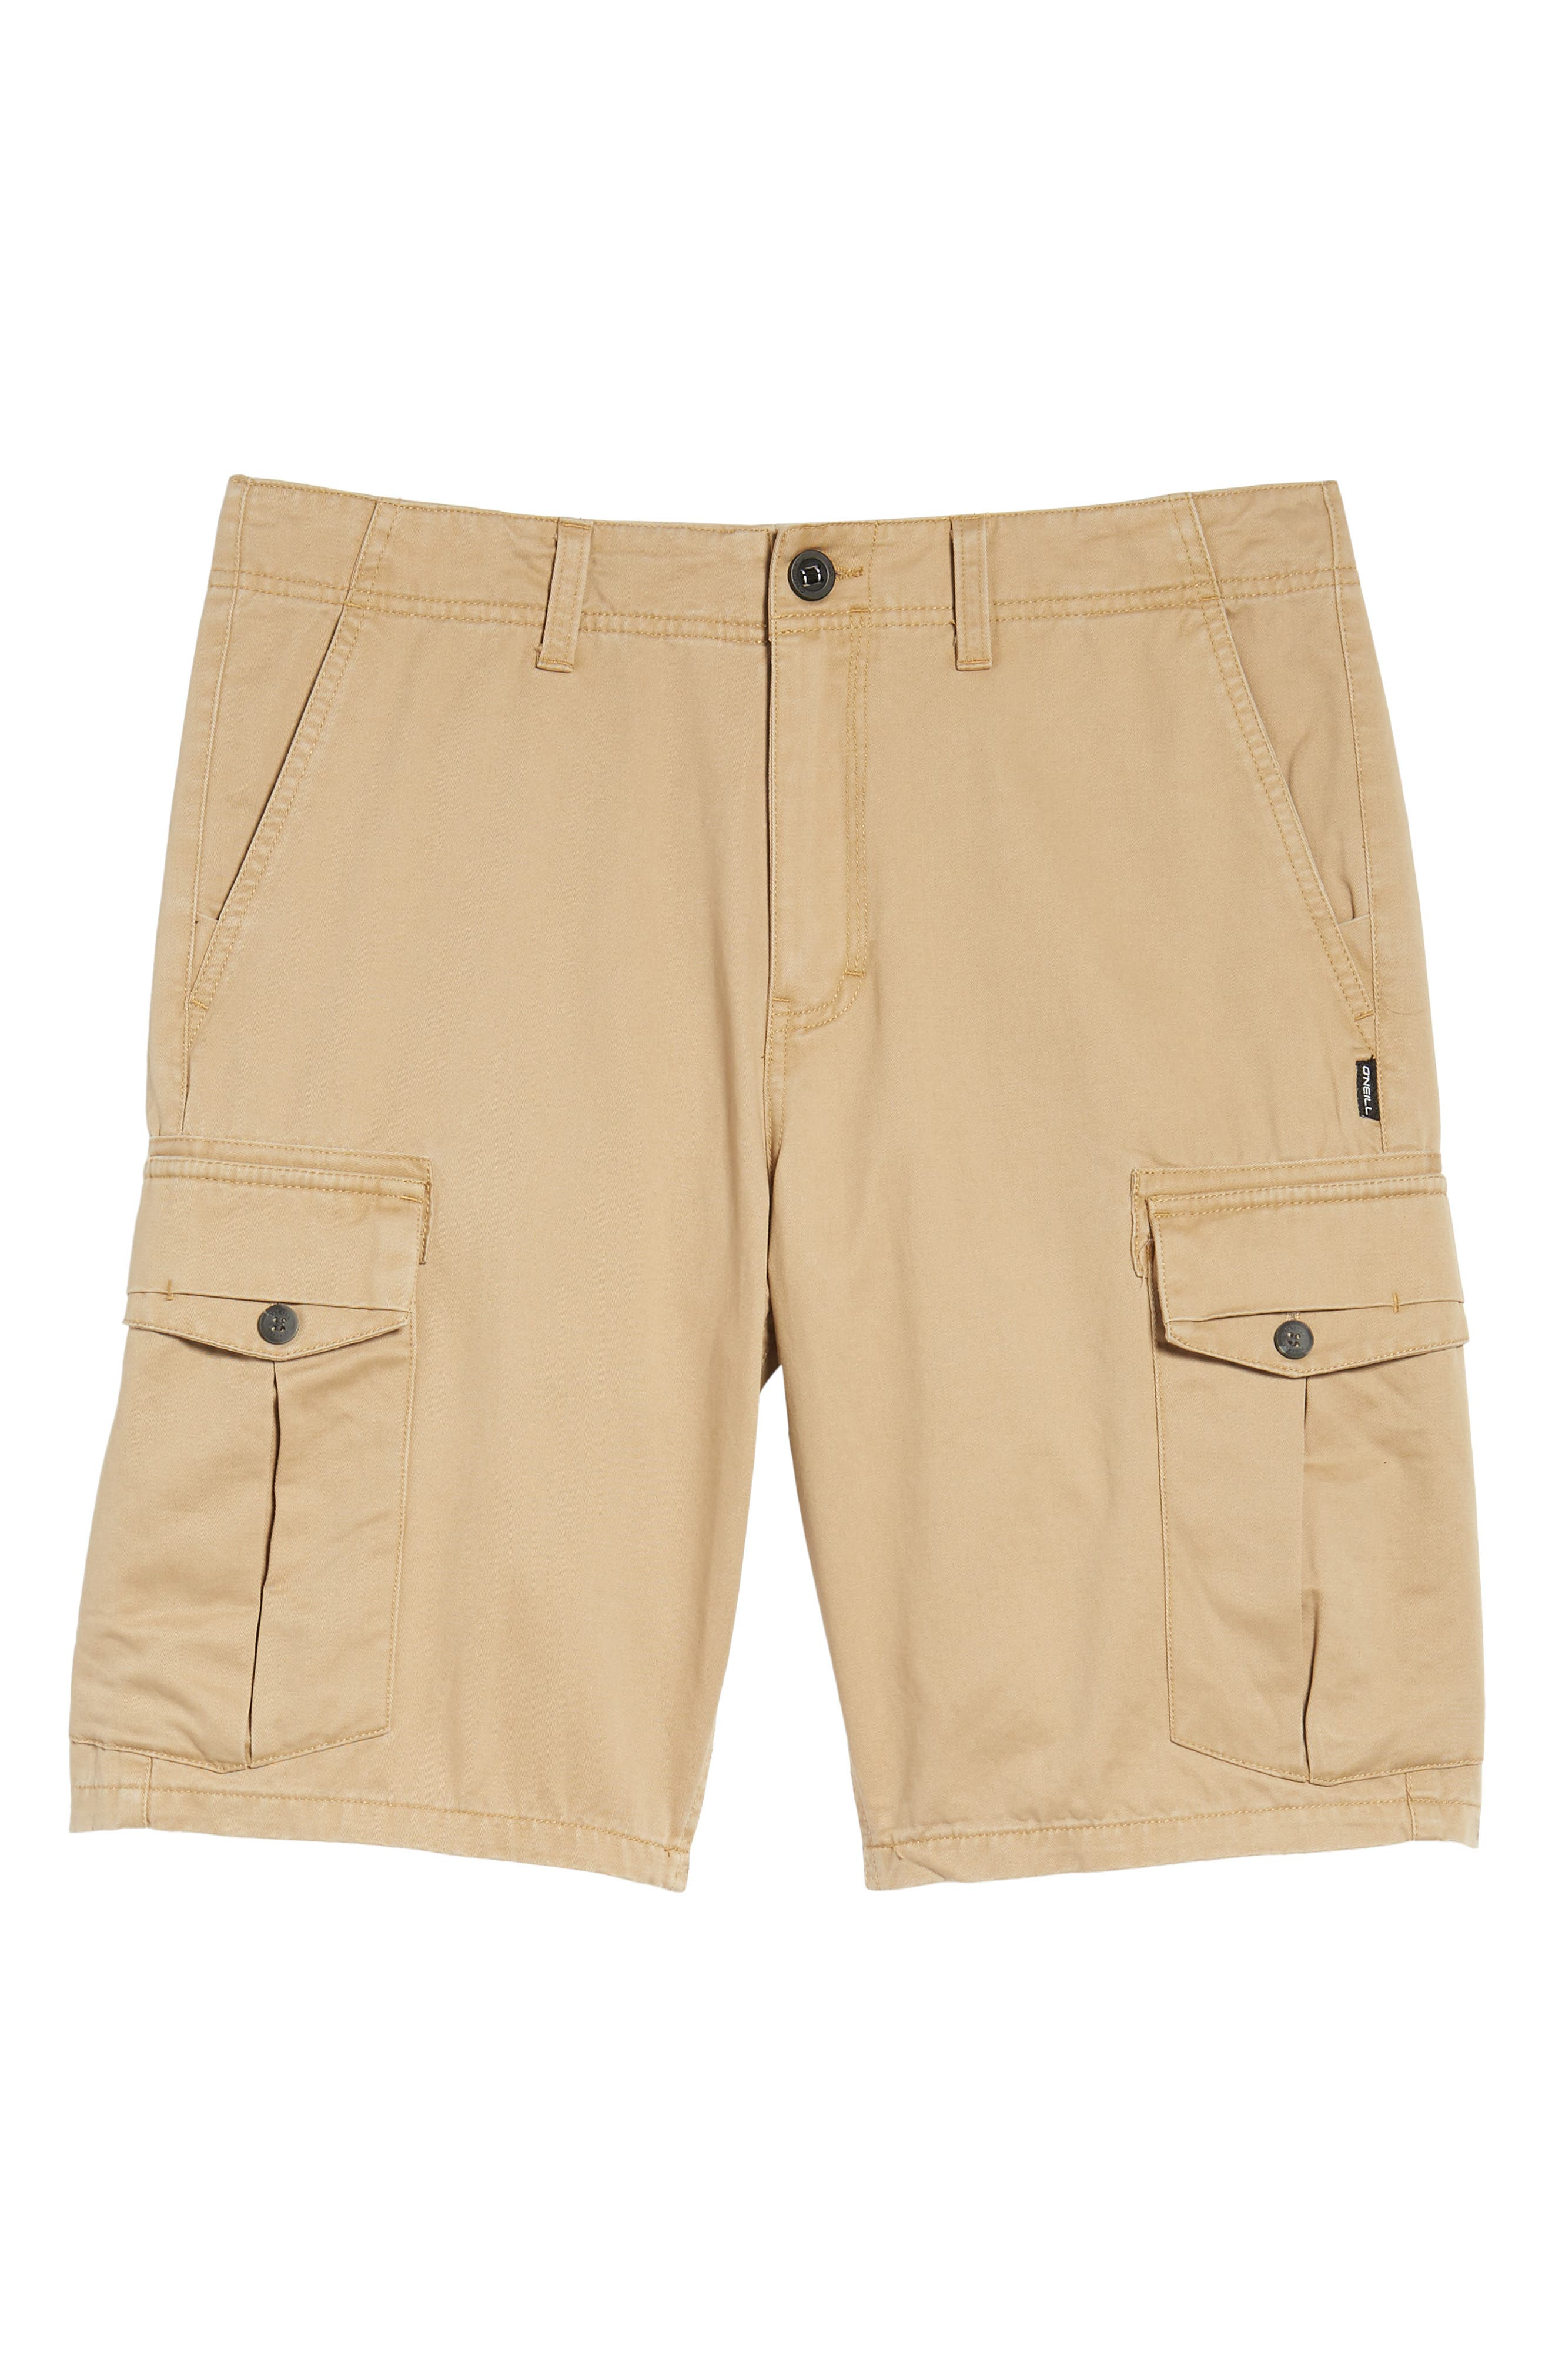 Campbell Cargo Shorts,                             Alternate thumbnail 6, color,                             251